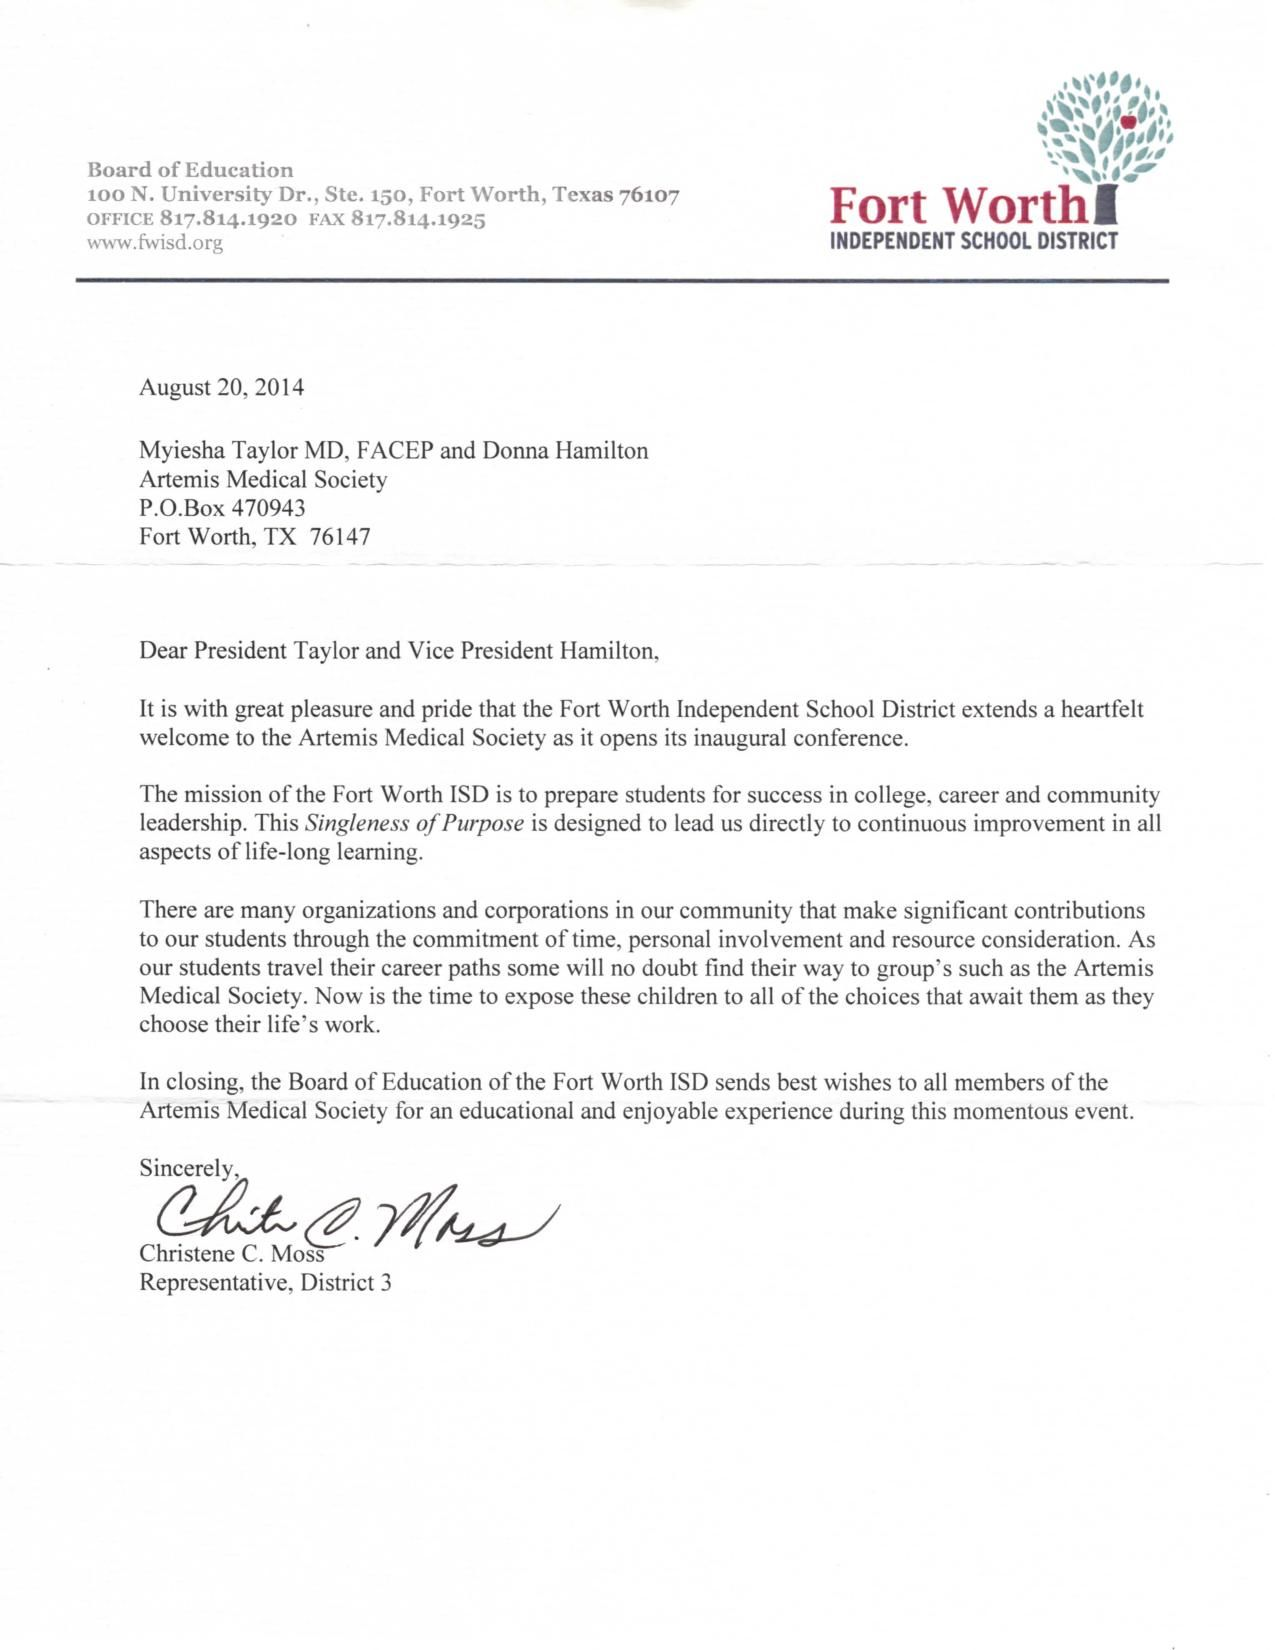 Welcome Letter From Fort Worth Independent School Districtwelcome